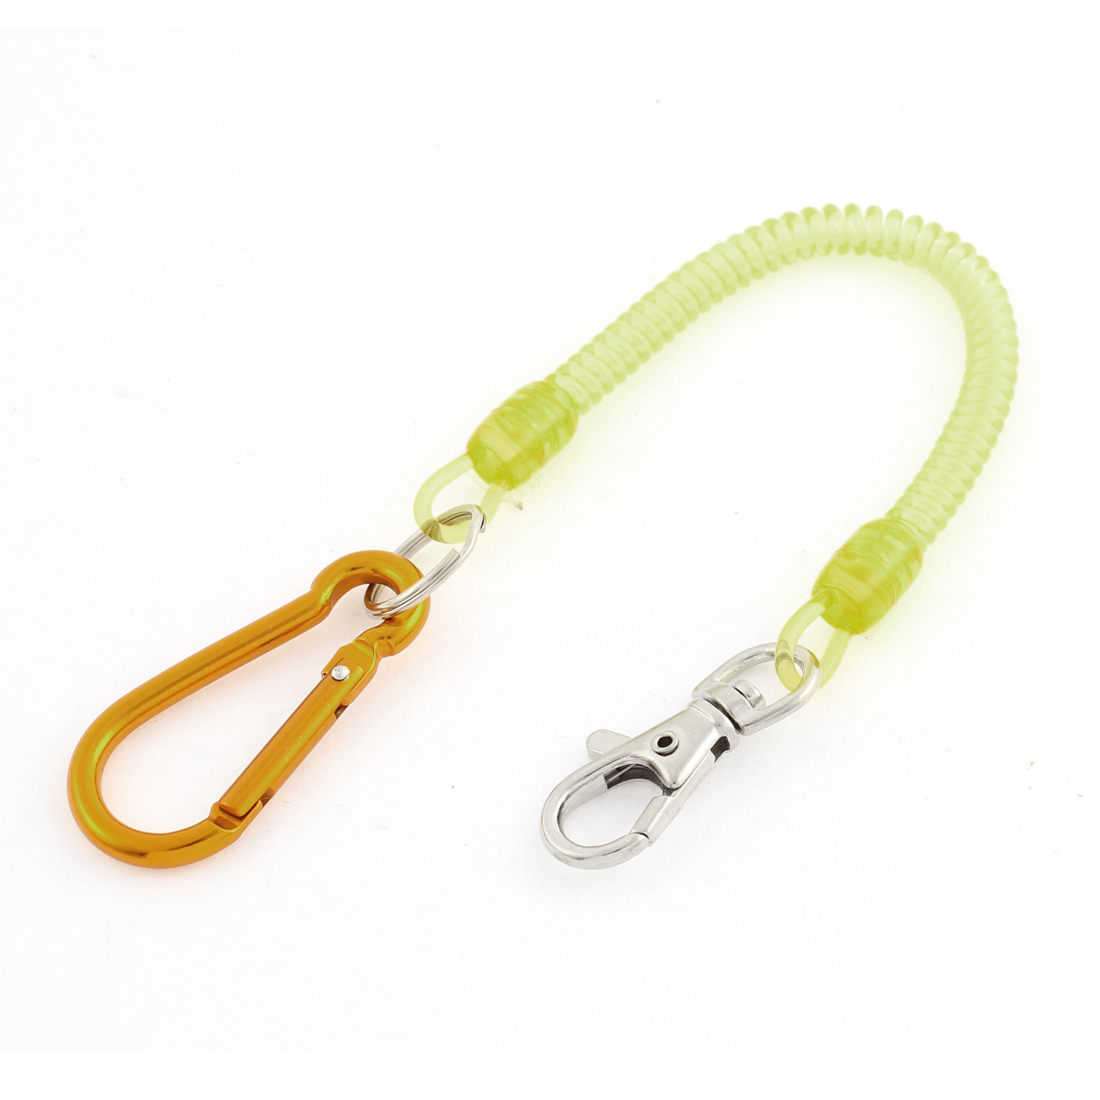 Carabiner Hook Yellow Coil Lanyard Spring Key Chain w Lobster Clasp